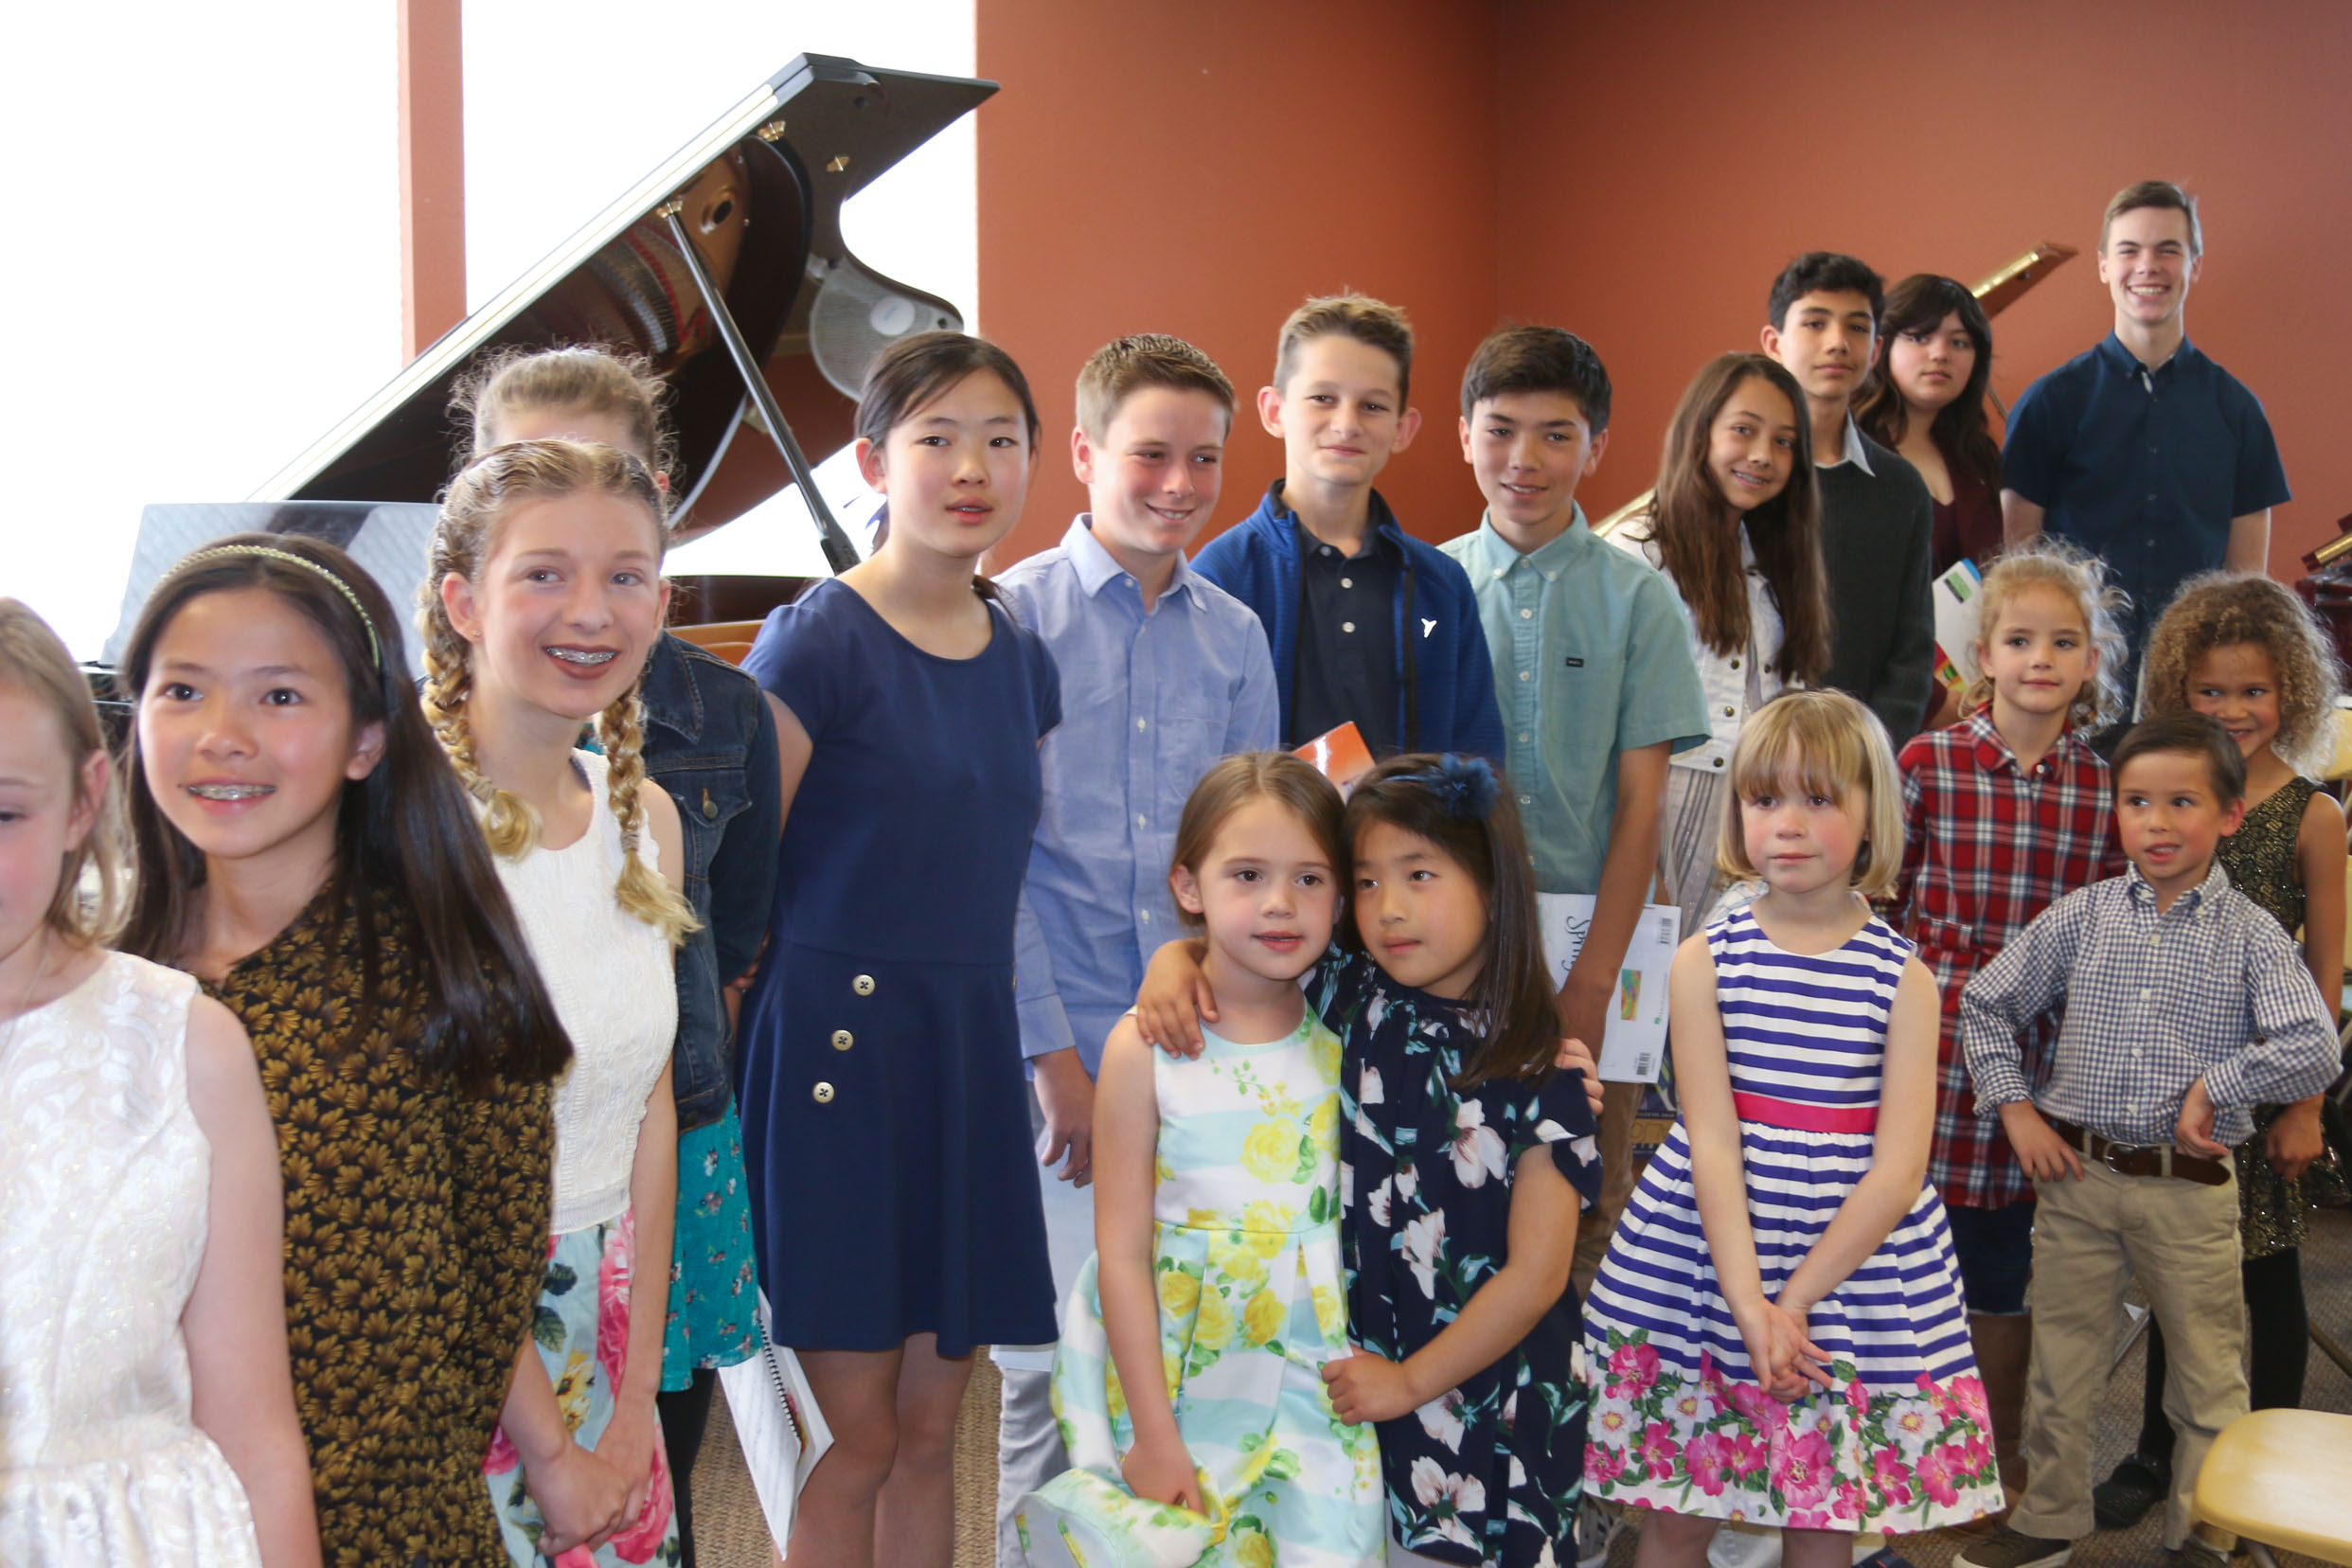 We offer a modern and creative approach to learning the piano that ensures a high-quality and well-rounded music education. Students thrive in our diverse and inclusive community, and families enjoy a selection of programs to help support every kind of student. -